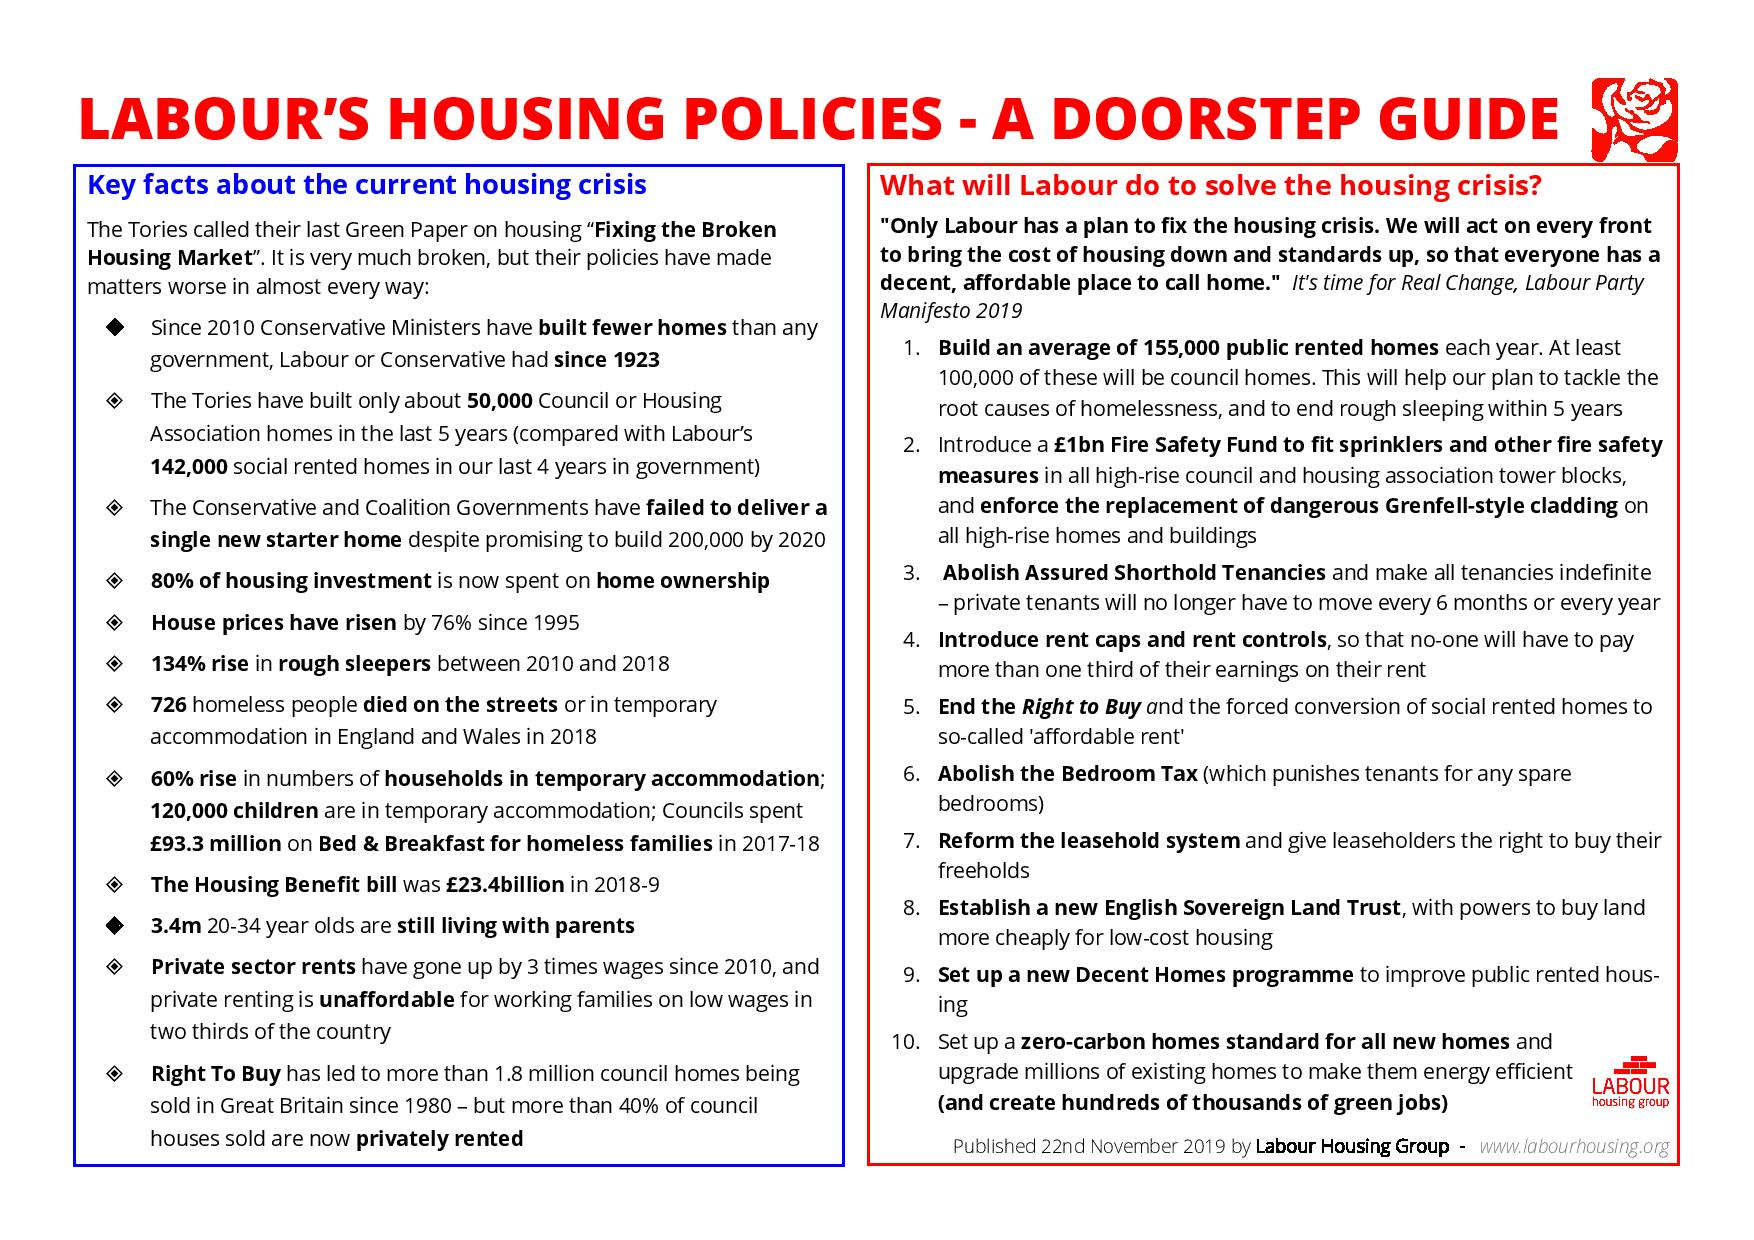 LHG Housing Policy Guide GE 2019